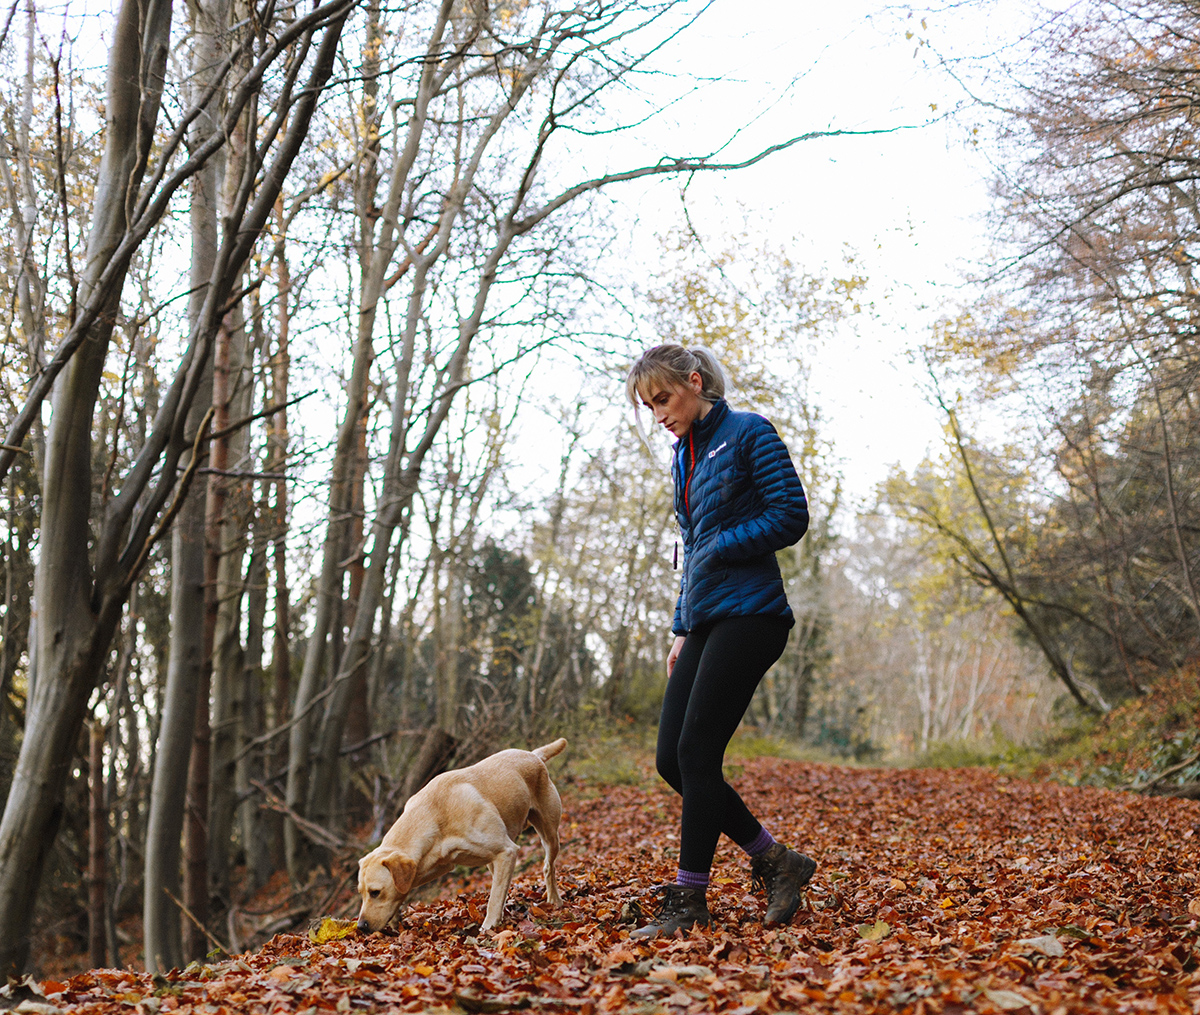 Get your daily 30 minutes of exercise with your pet with a brisk walk